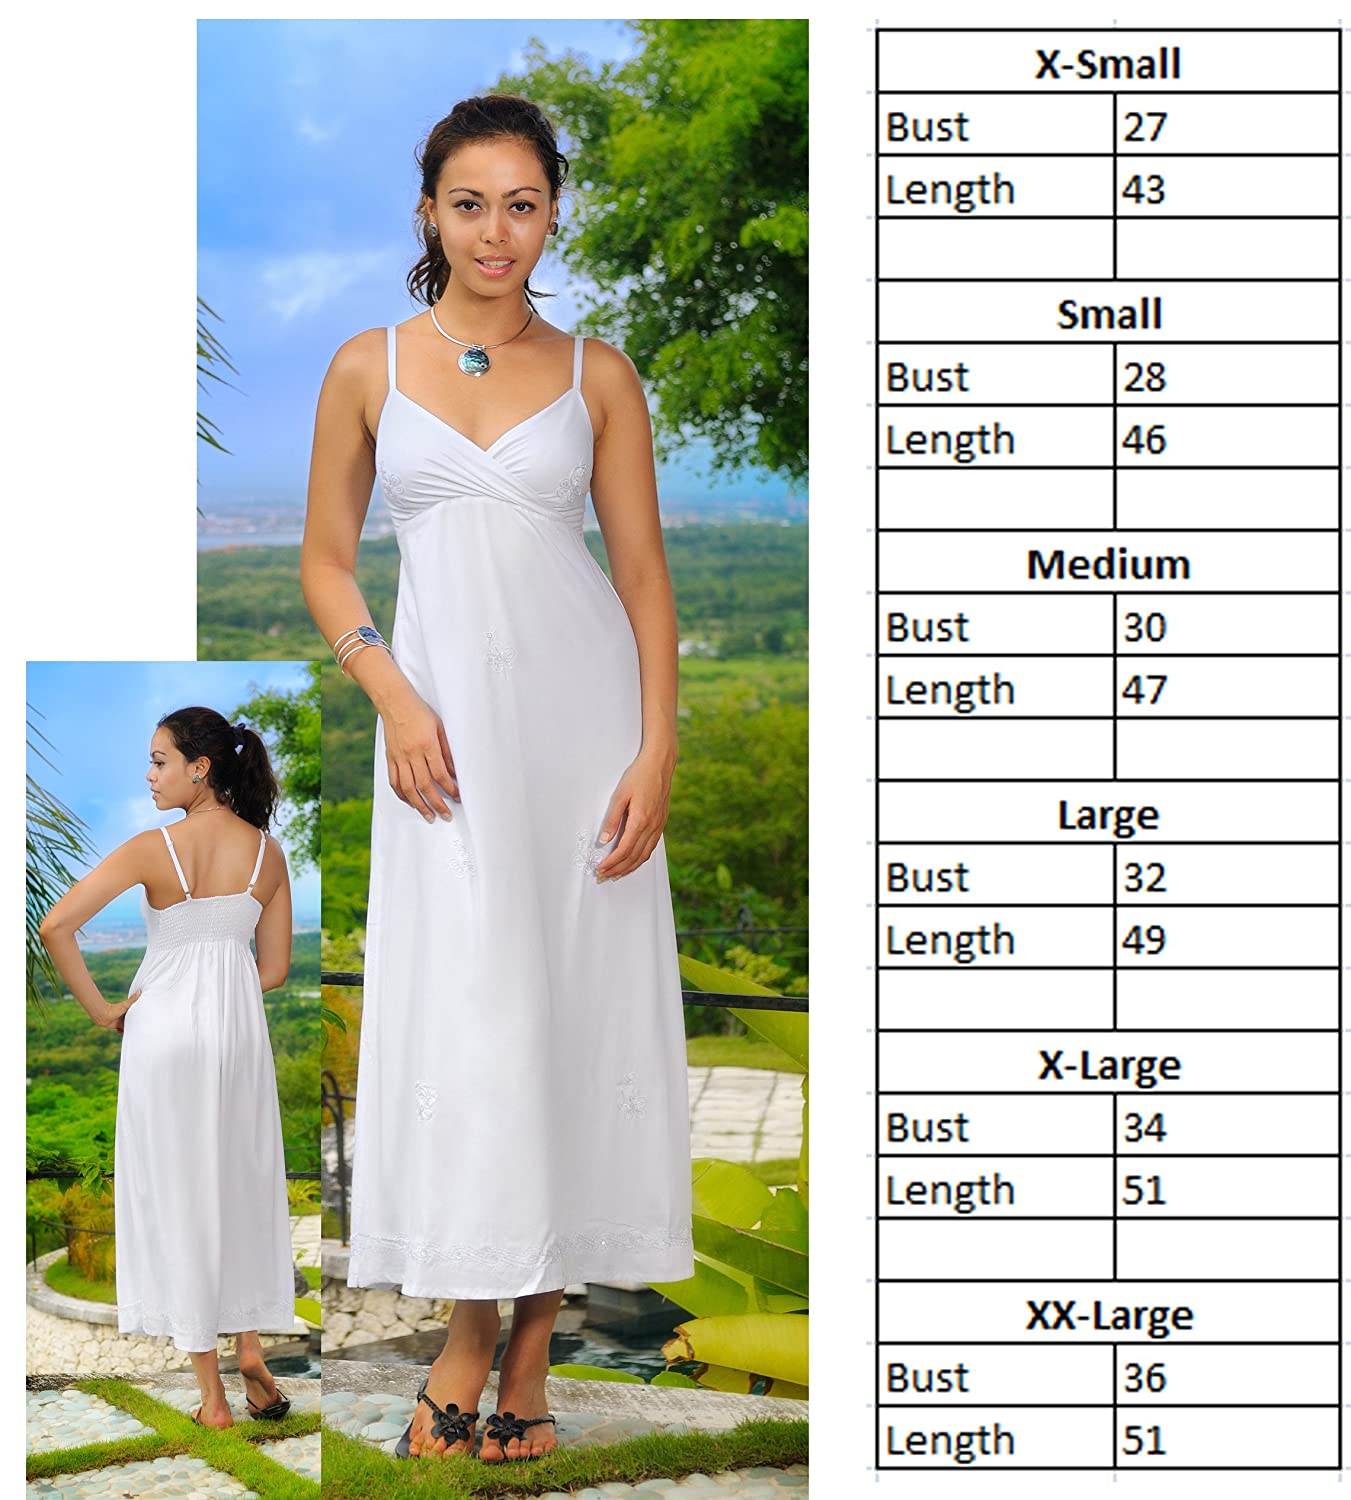 1 World Sarongs Vestido Veraniego Largo para Mujer con Bordado en Color Blanco - Forrado: Amazon.es: Ropa y accesorios